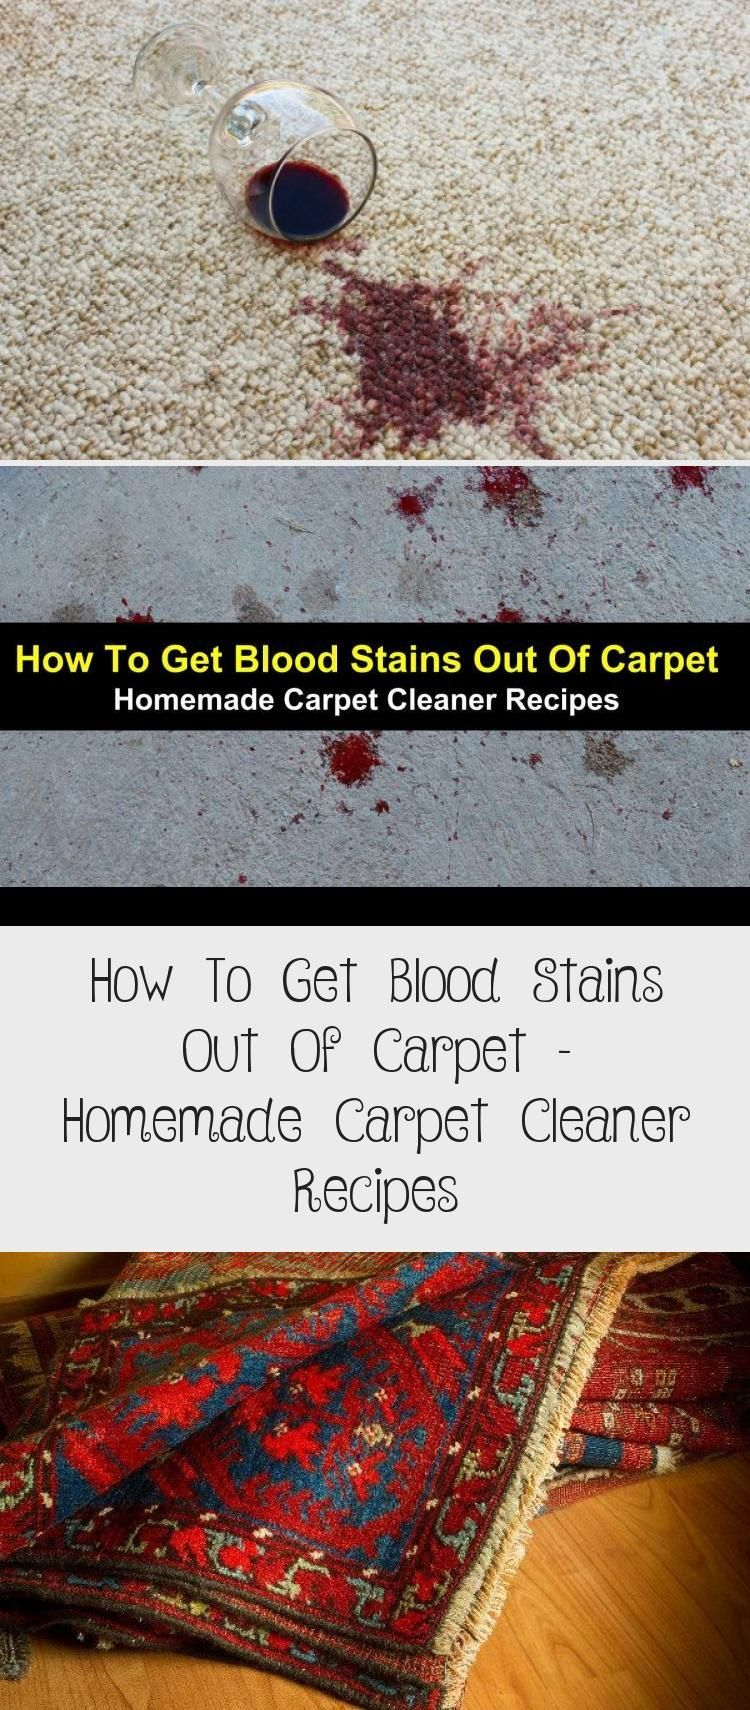 How To Get Blood Stains Out Of Carpet With Detailed Homemade Carpet Cleaner Rec In 2020 Get Blood Stains Out Carpet Cleaner Homemade Cleaner Recipes